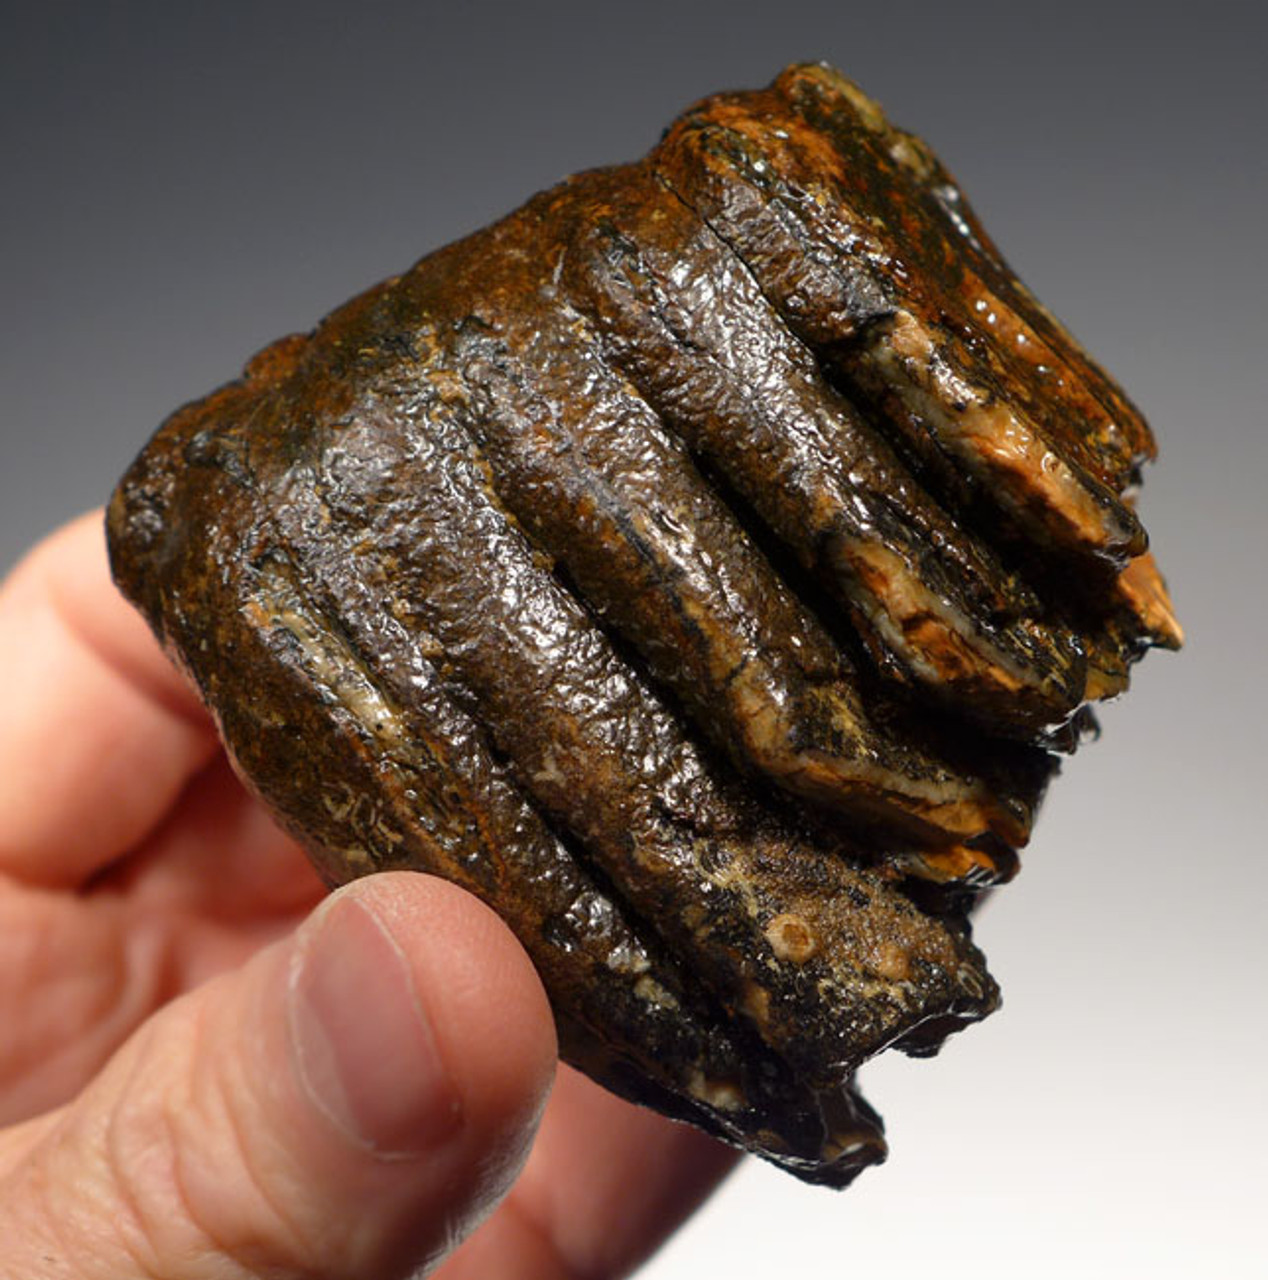 LMX133 - BABY WOOLLY MAMMOTH UNERUPTED LOWER TOOTH FROM EUROPE